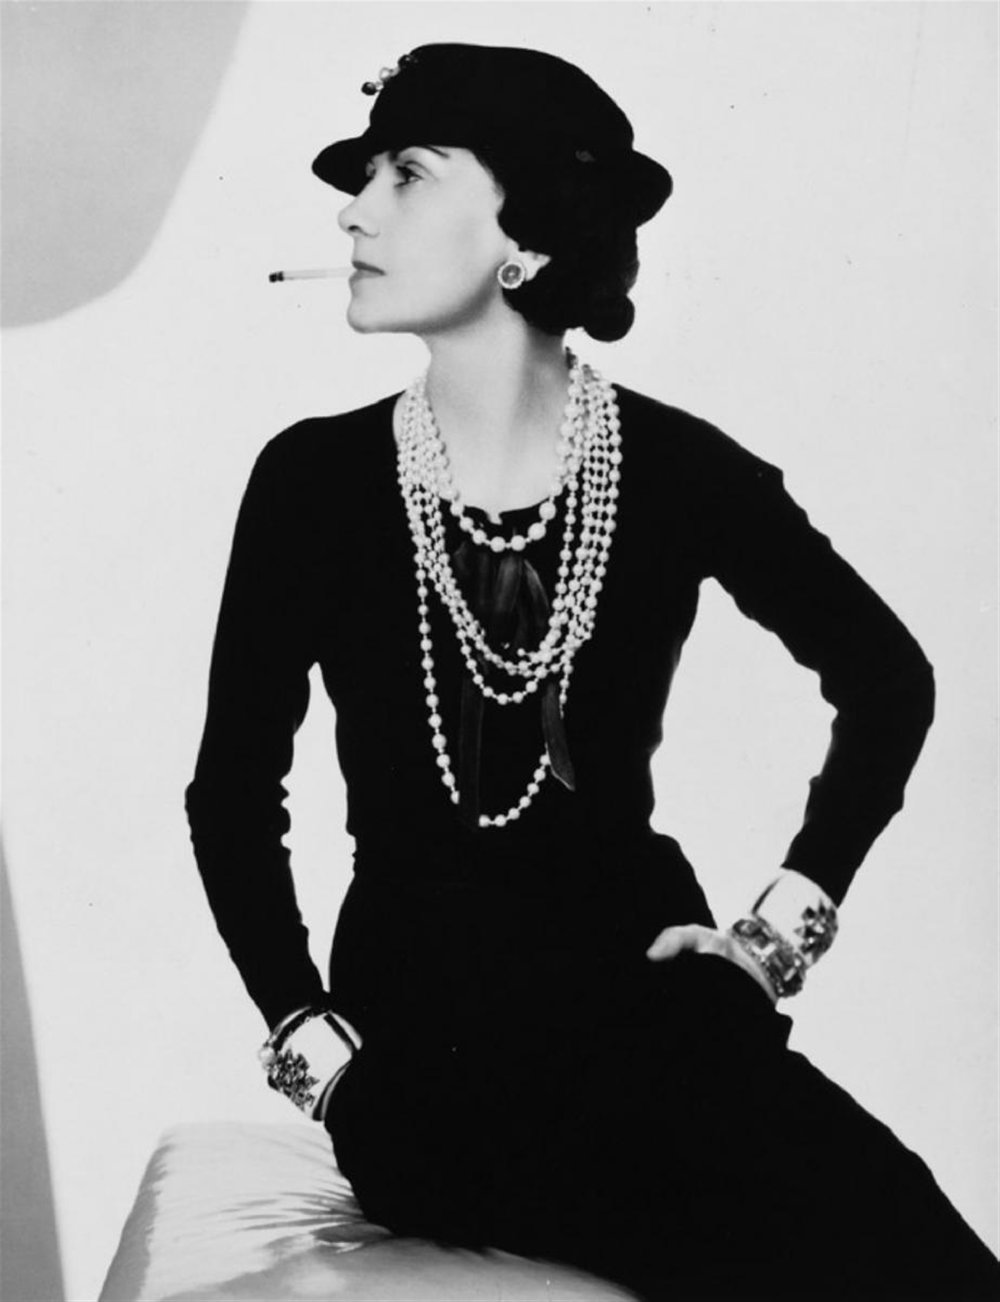 Lempertz-872-193-Photographie-Man-Ray-Coco-Chanel.jpg